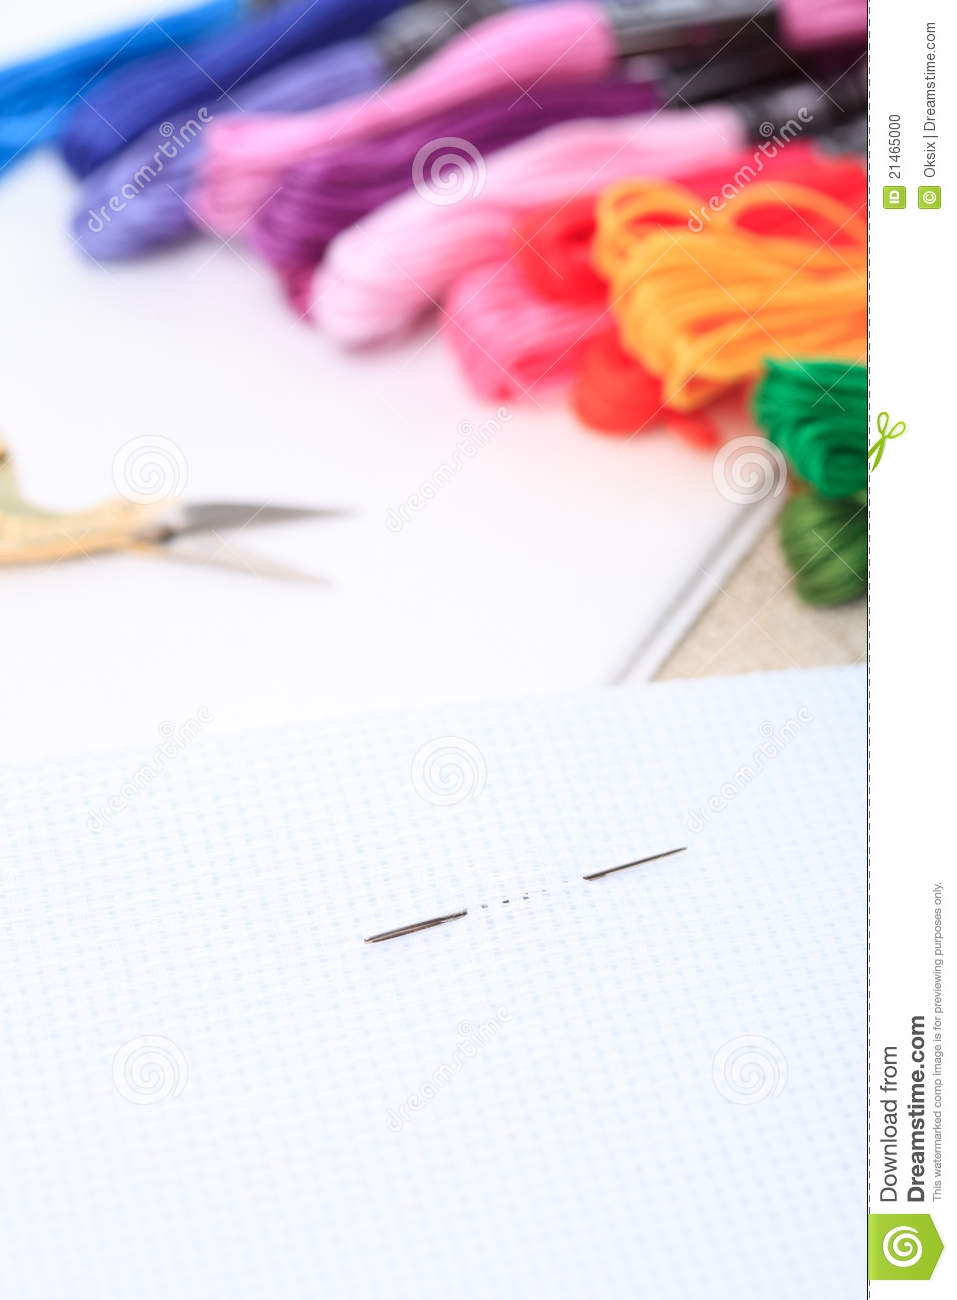 Embroidery Floss And Needle Stock Photo - Image 21465000